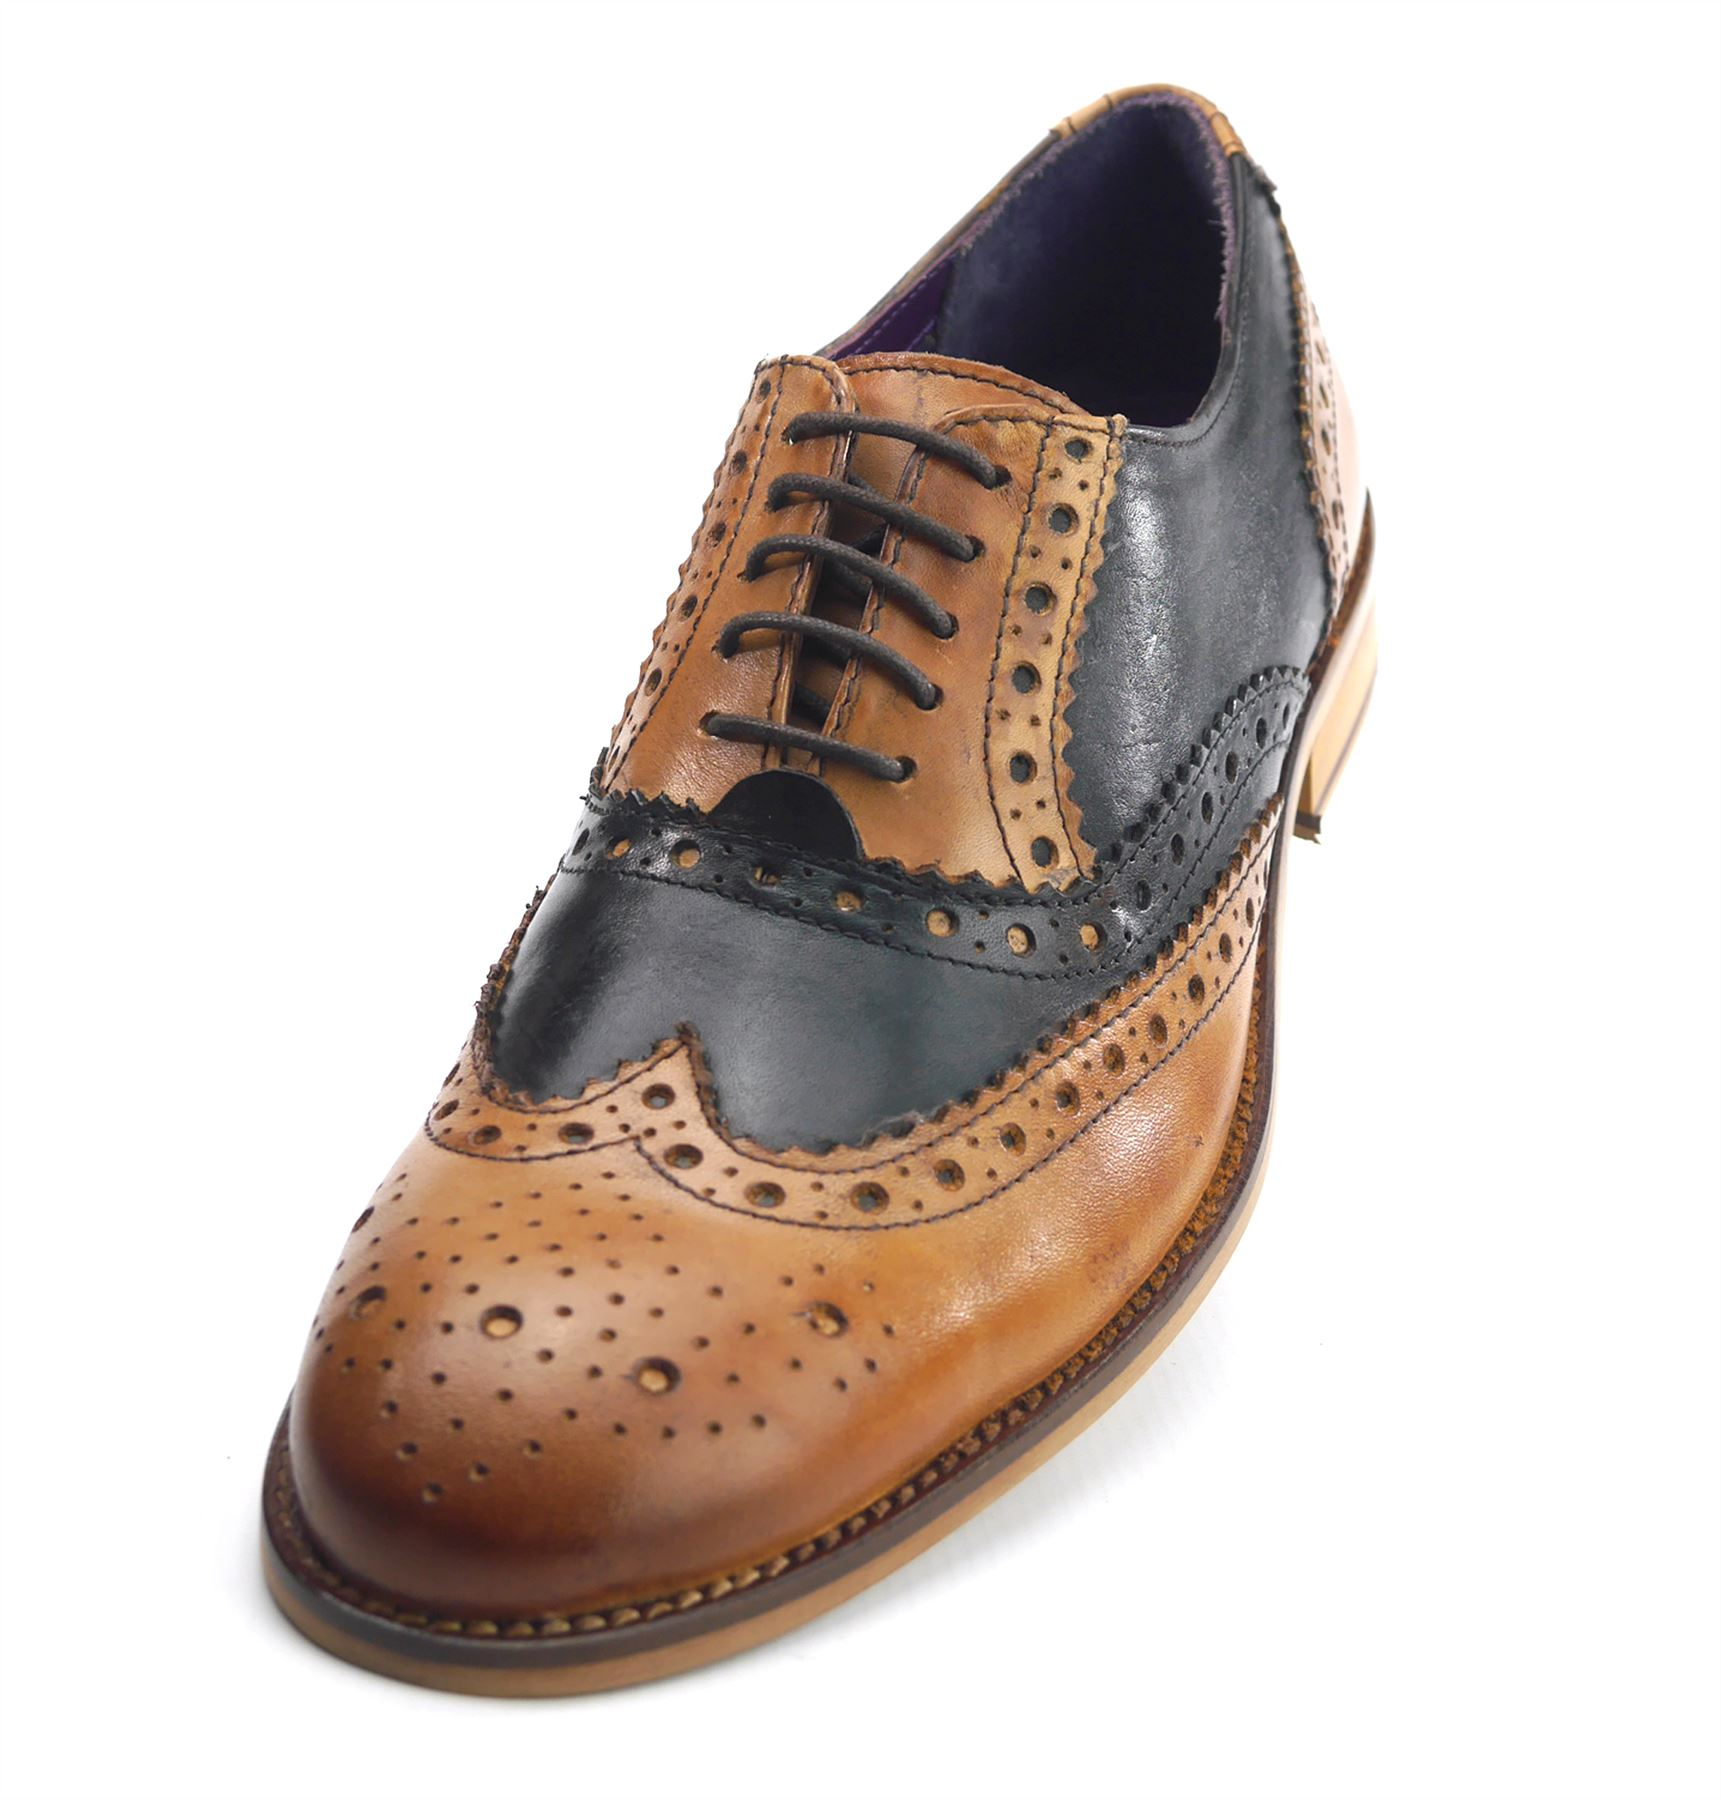 White Frank James Newham Brogues 1920 Lace Up Two Tone Mens Leather Shoes Tan